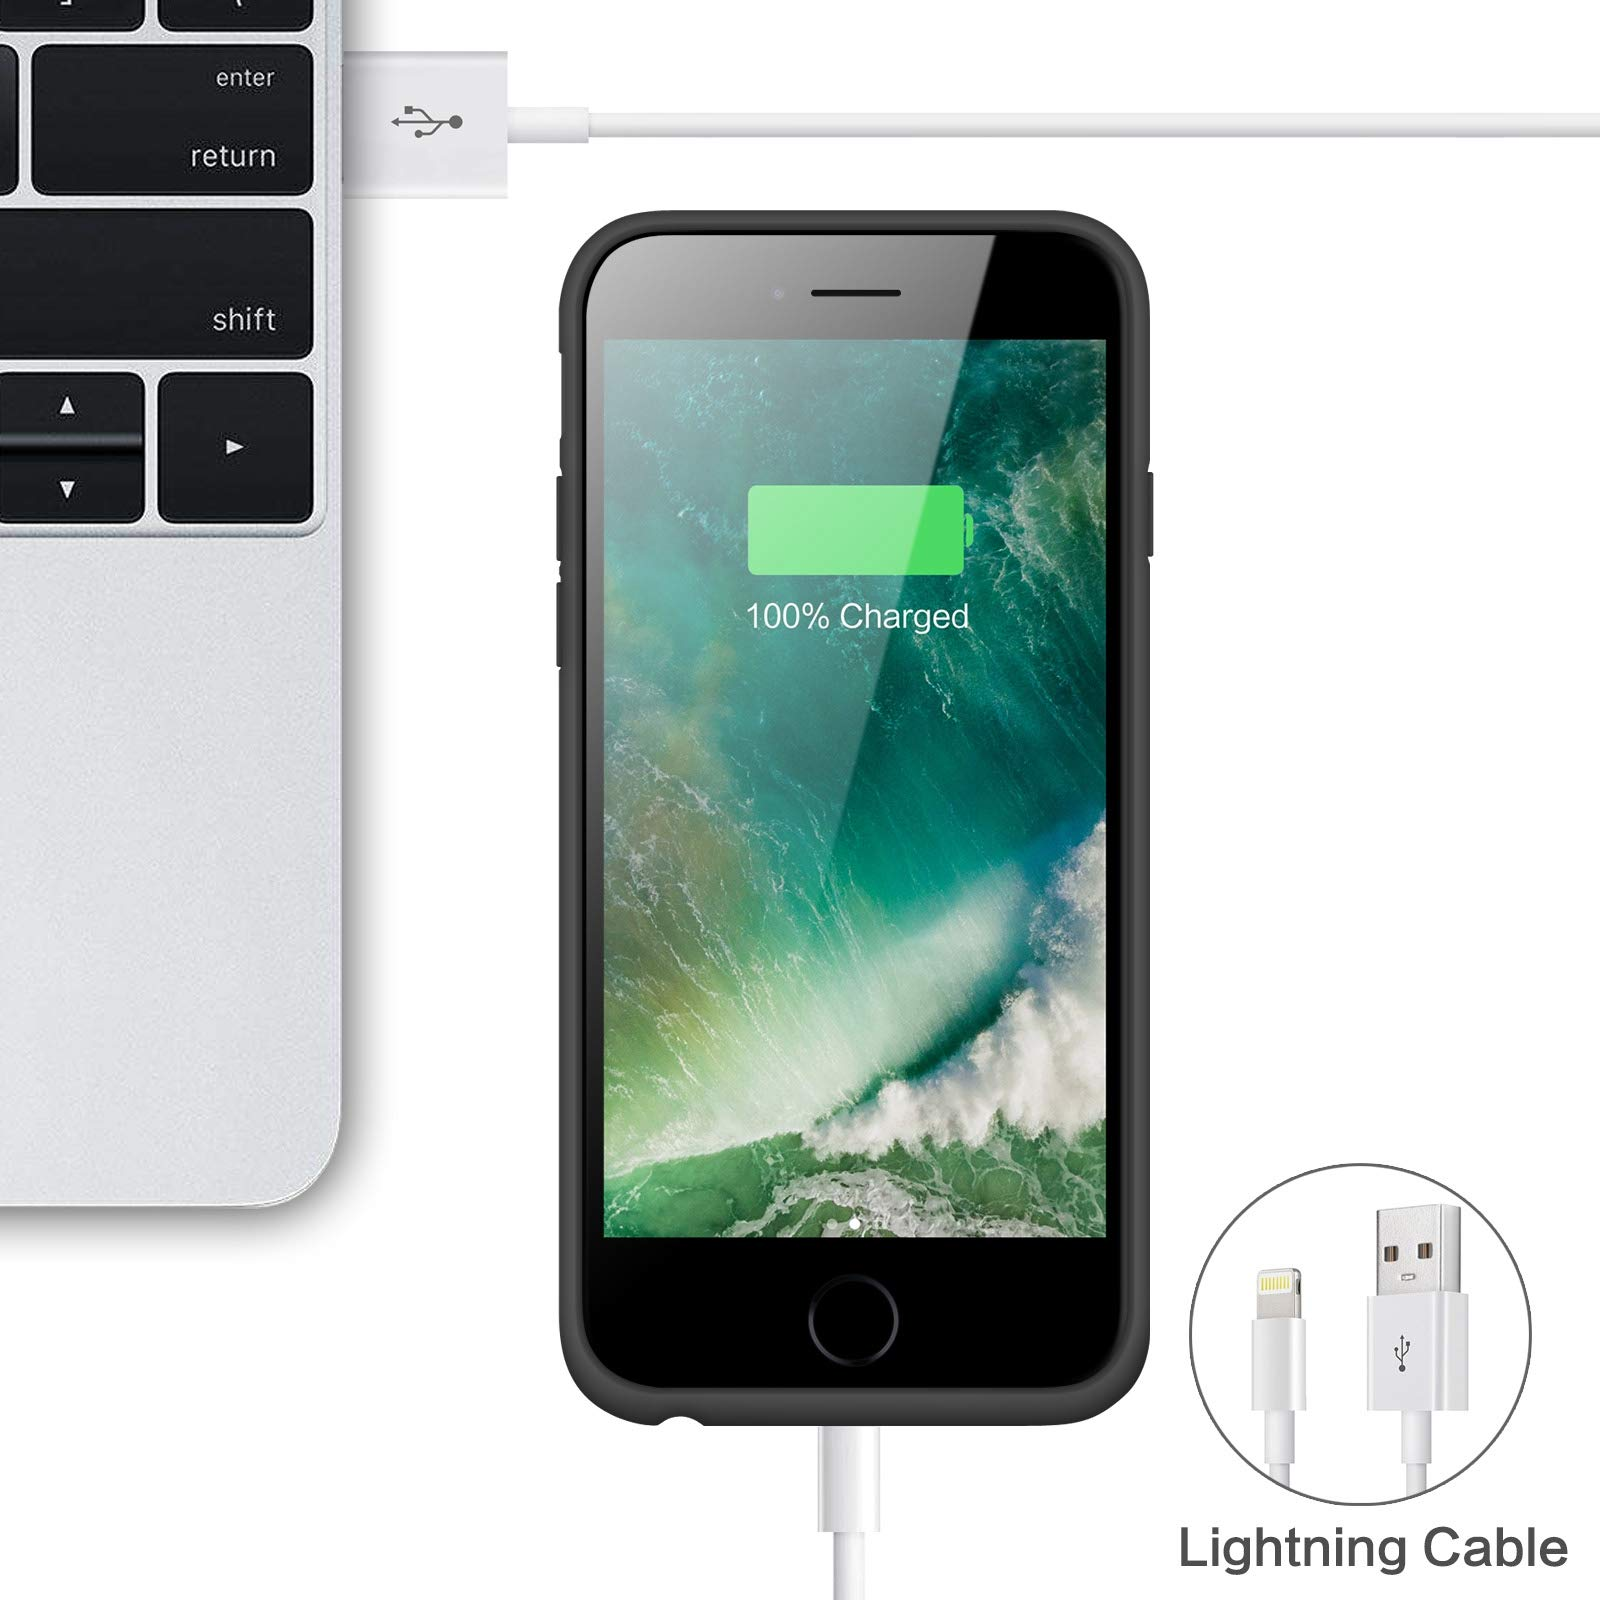 Battery case for iPhone 8/7, Xooparc [6000mah] Upgraded Charging Case Protective Portable Charger Case Rechargeable Extended Battery Pack for Apple iPhone 7/8(4.7') Backup Power Bank Cover (Black) by Xooparc (Image #7)